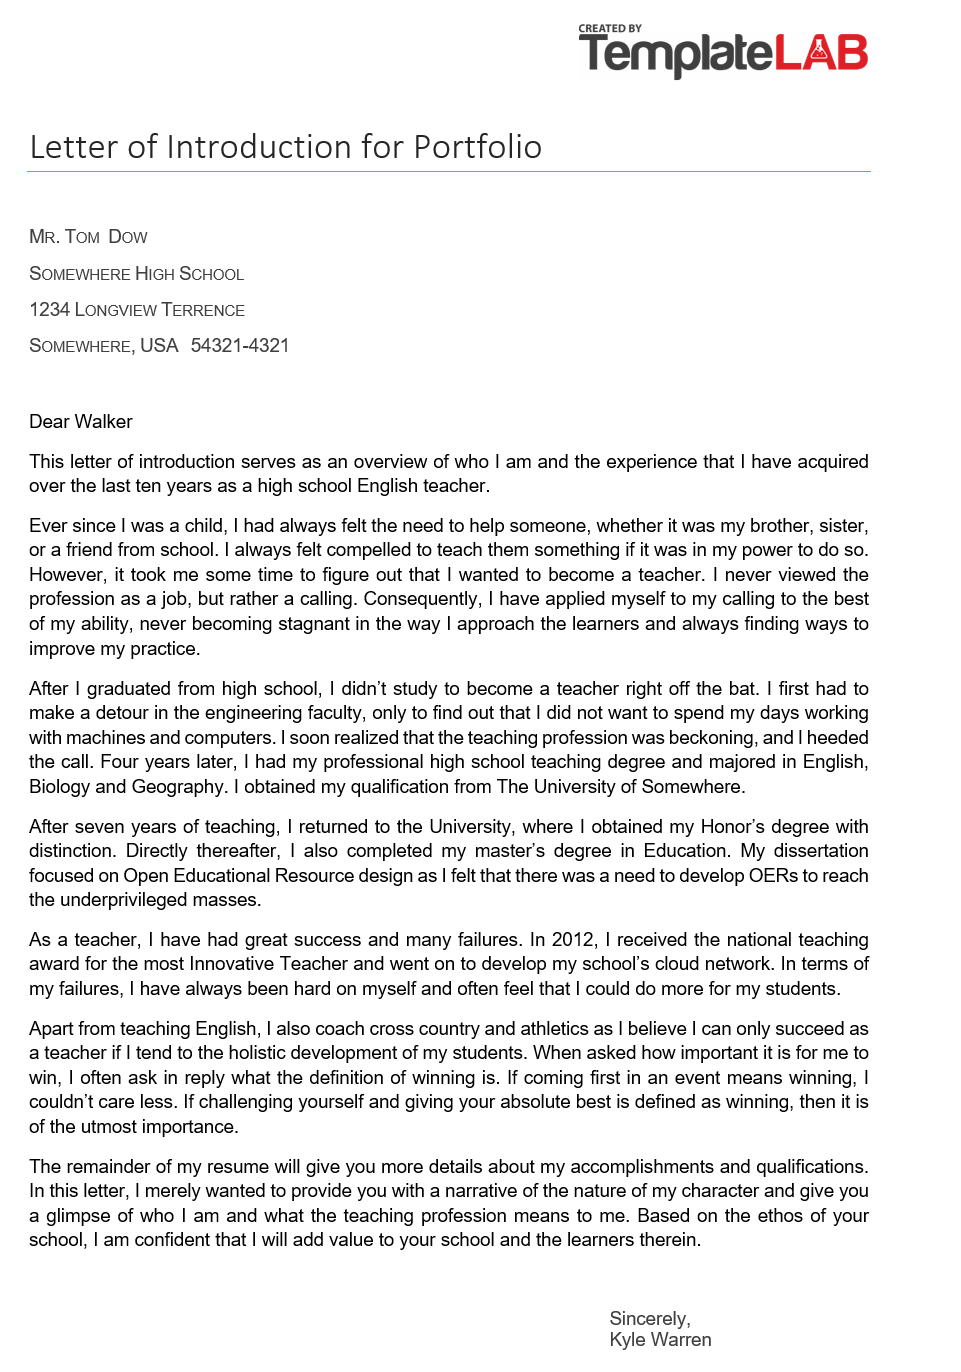 Free Letter of Introduction for Portfolio 2